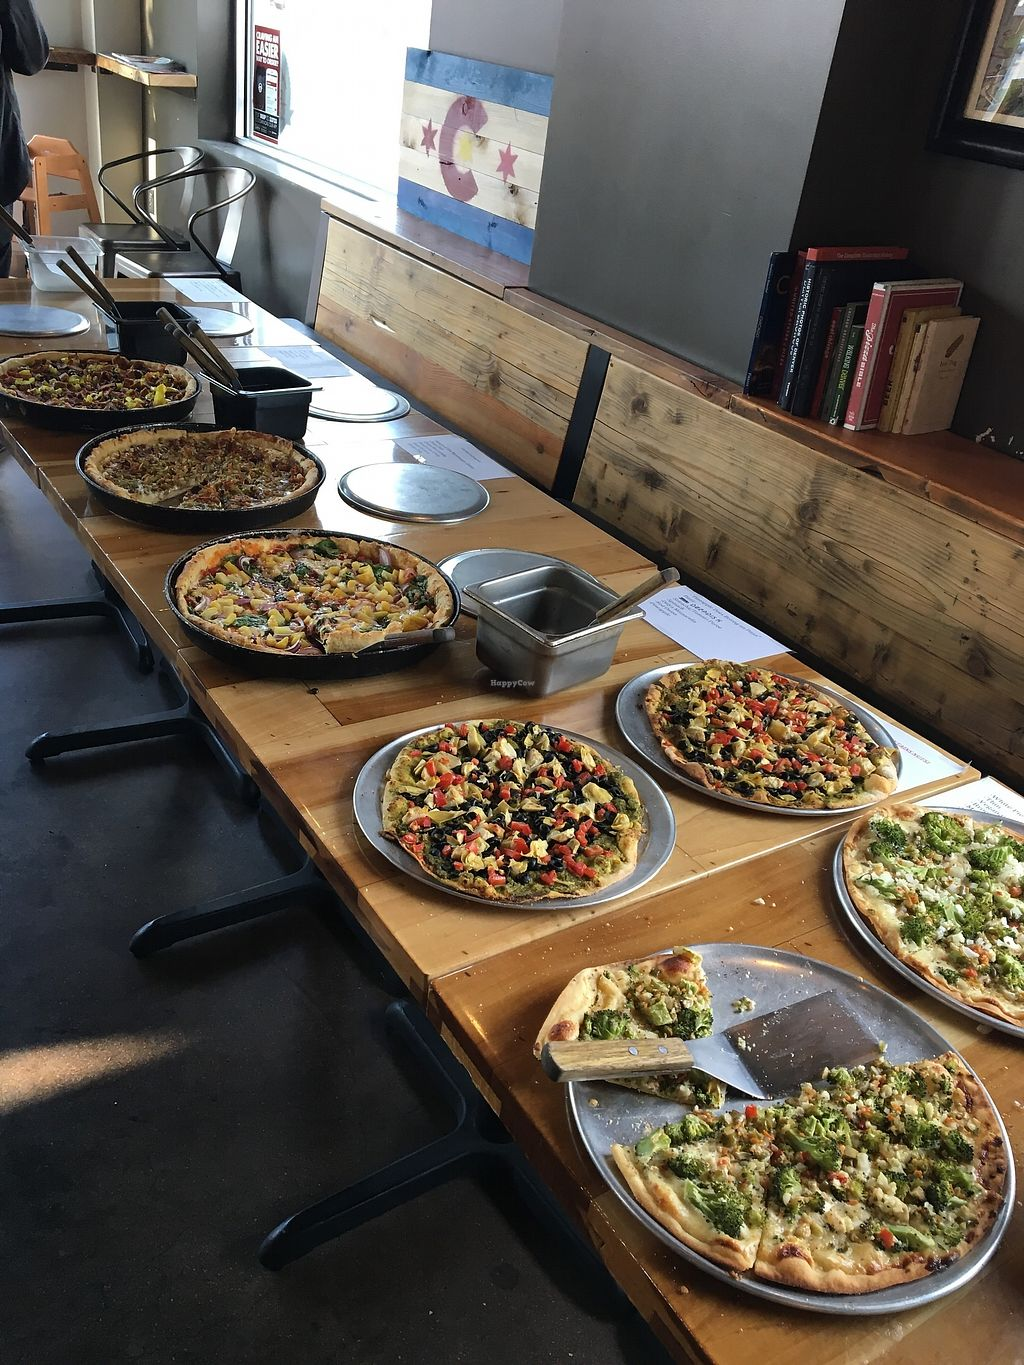 """Photo of Denver Deep Dish  by <a href=""""/members/profile/Pizzaguy"""">Pizzaguy</a> <br/>Vegan Pizza <br/> March 12, 2018  - <a href='/contact/abuse/image/114404/369921'>Report</a>"""